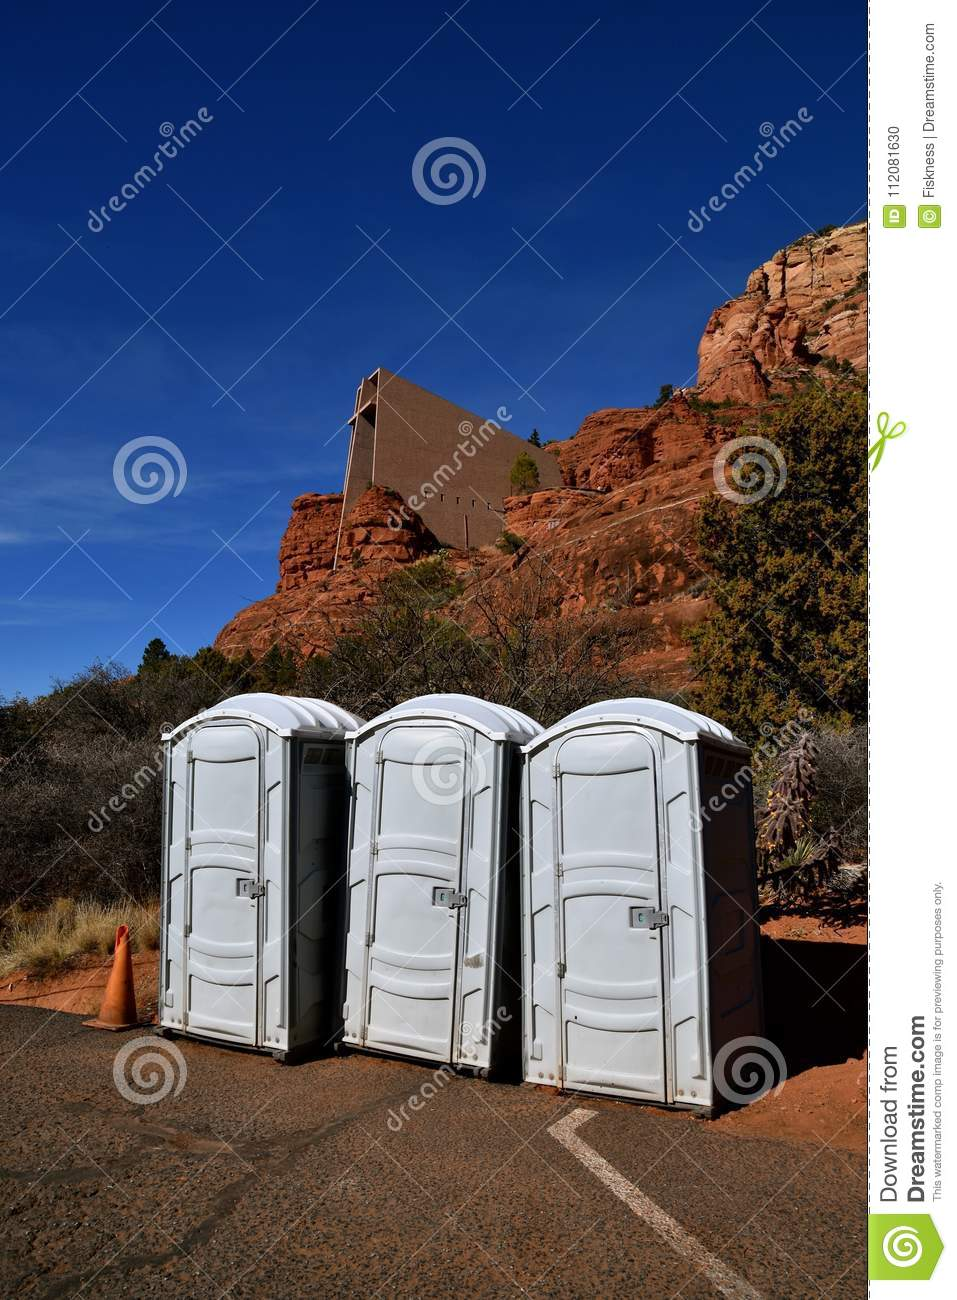 Portable bathrooms in front of Chapel of the Cross